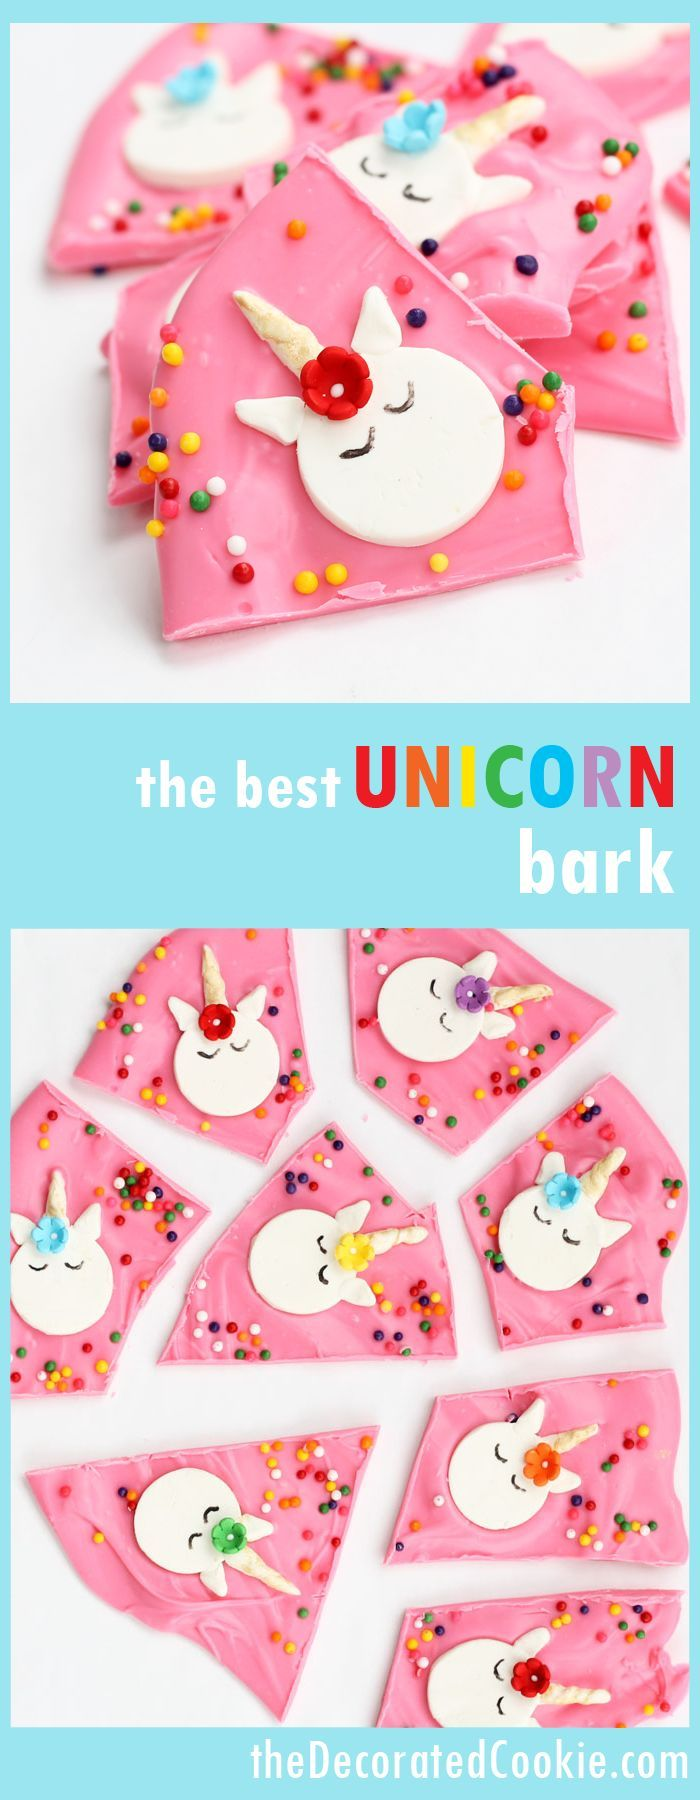 UNICORN chocolate bark! Great dessert for rainbow and unicorn parties